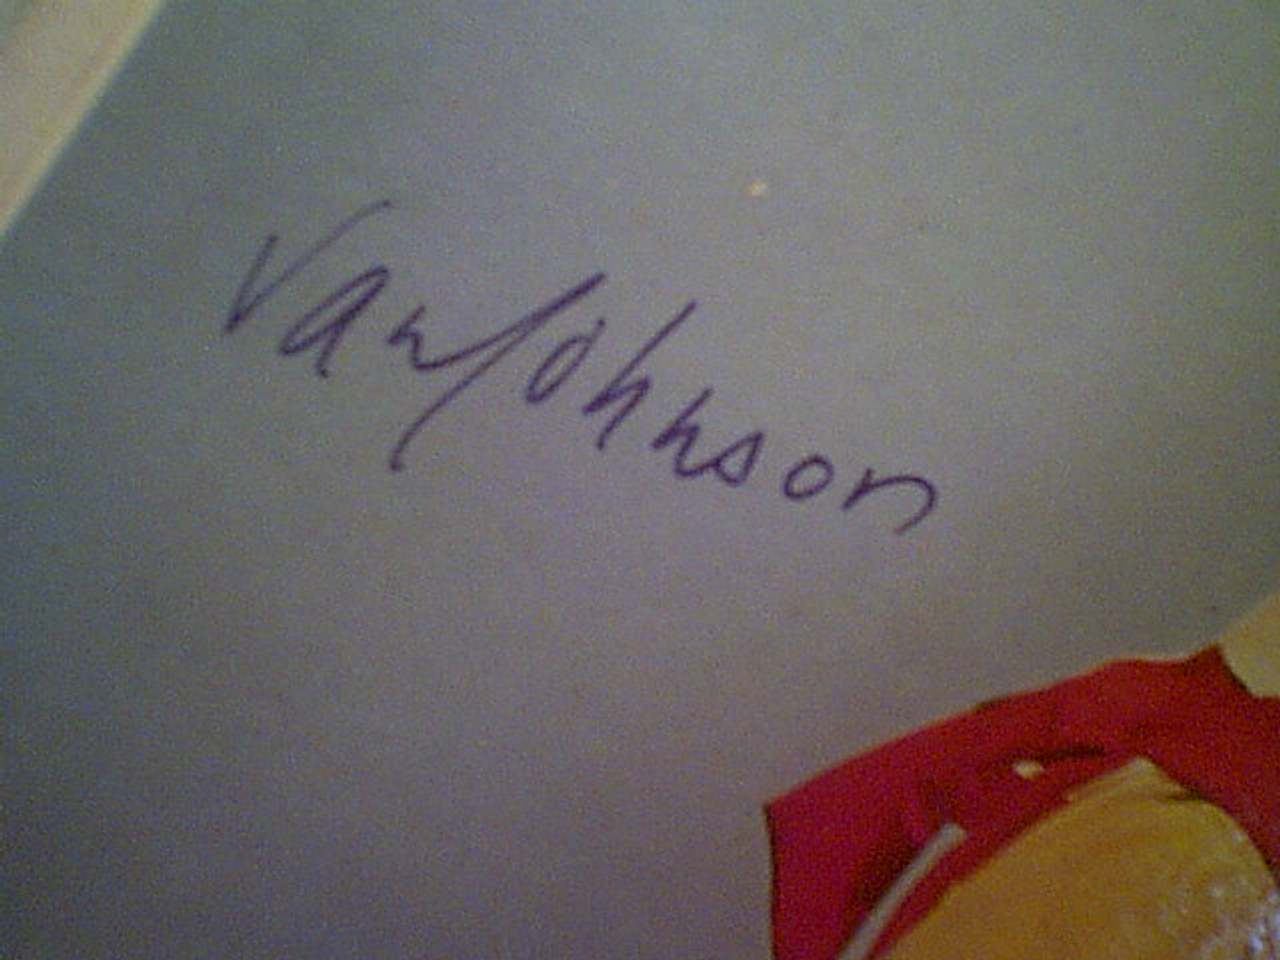 """Johnson, Van """"The Pied Piper Of Hamelin"""" 1957 LP Signed Autograph Cover Color Photo"""